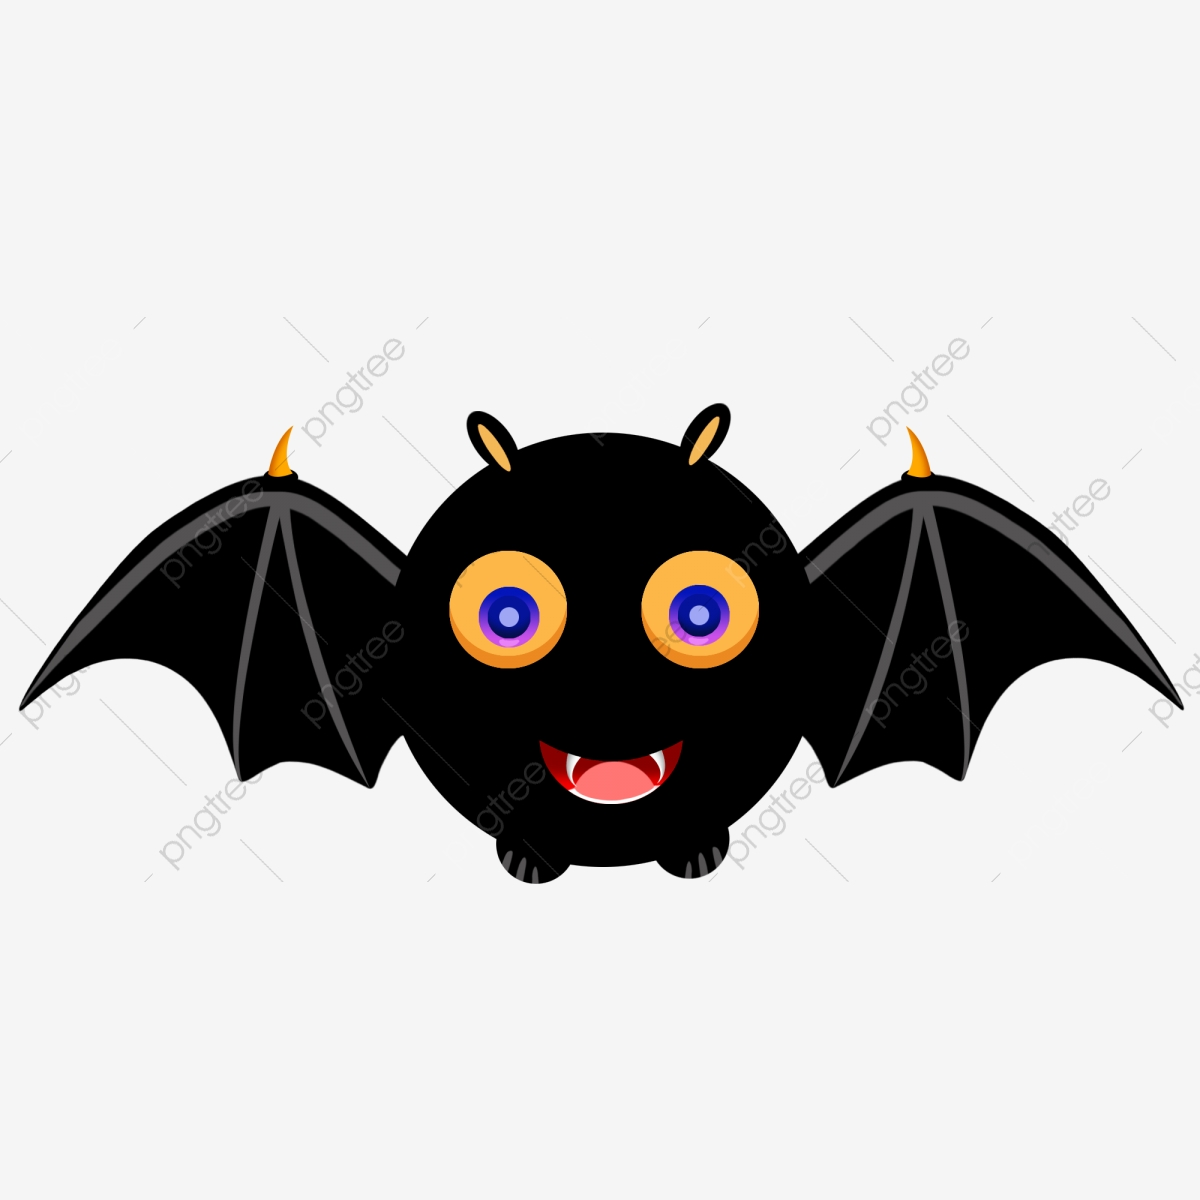 Cartoon Halloween Black Bat Auspicious Animal Wings Element, Cartoon.